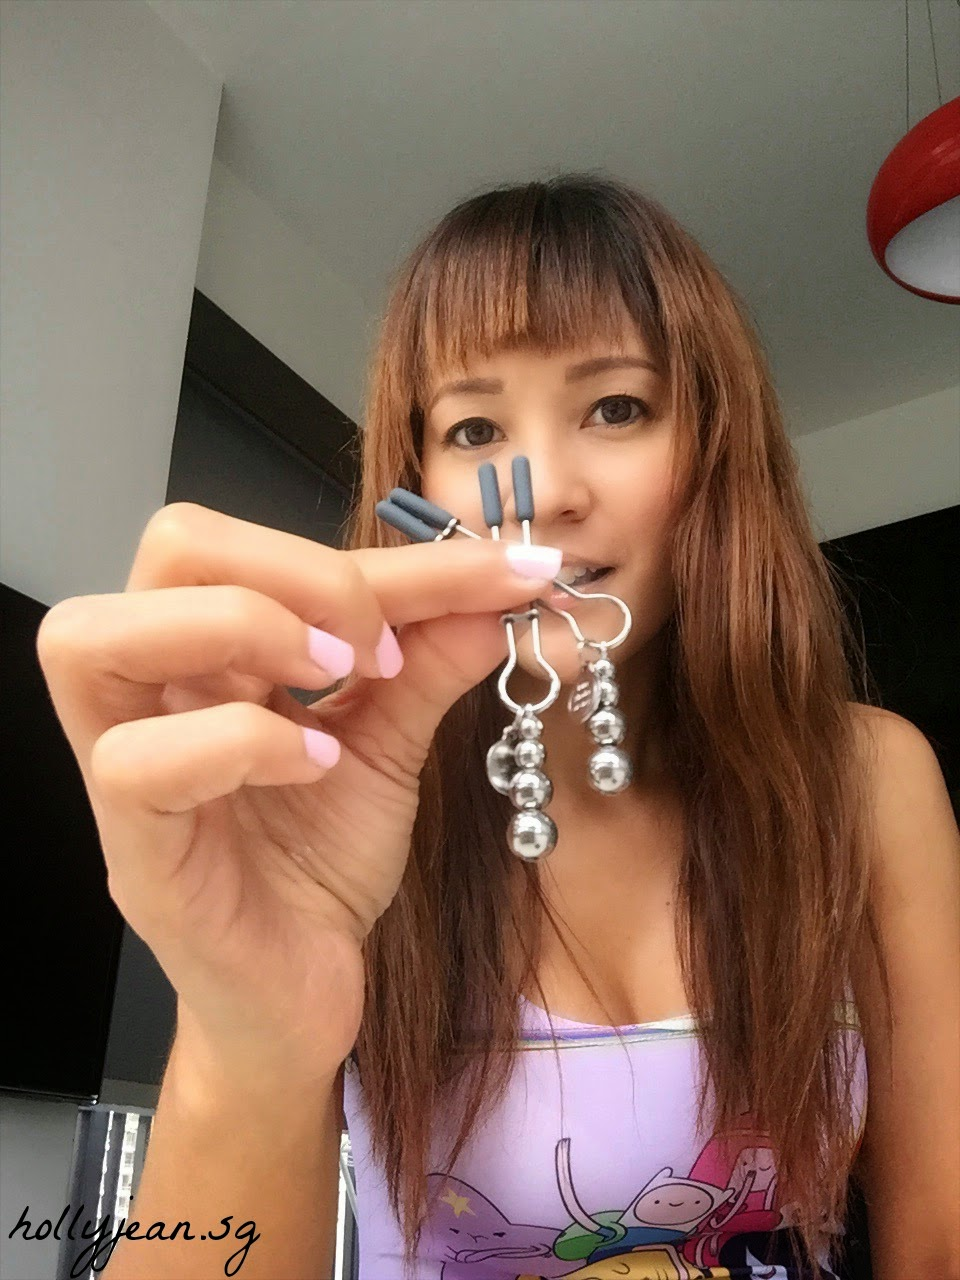 How to put on nipple clamps